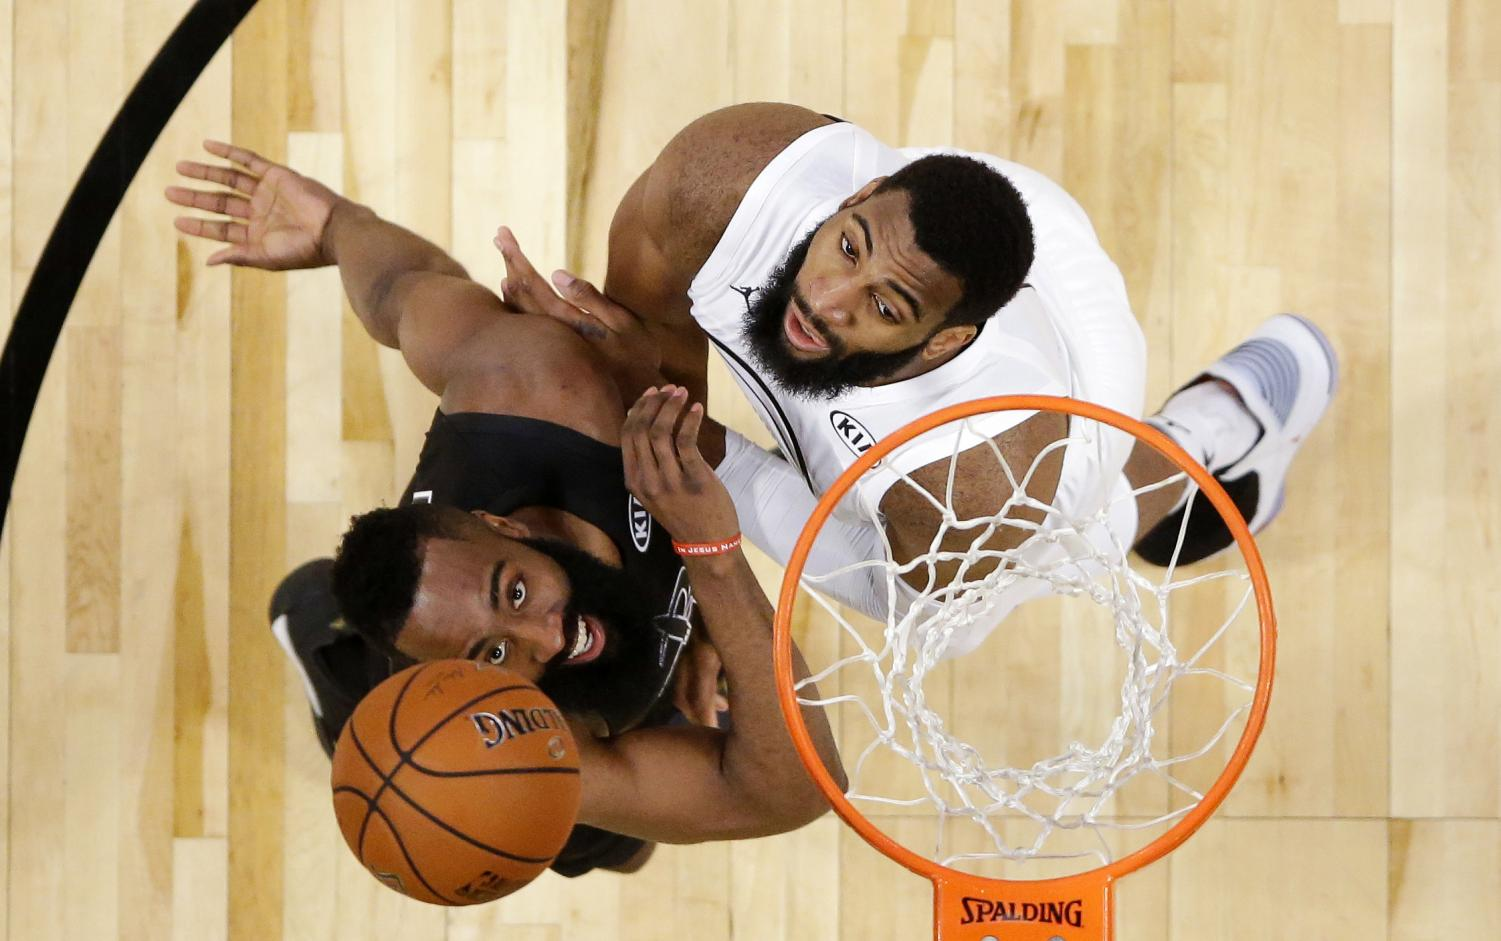 Two players, Team Stephen's James Harden, left, from the Houston Rockets and Team LeBron's Andre Drummond form the Oklahoma City Thunder, go for a rebound in the second half of the NBA All-Star Game on Feb. 18. (Photo courtesy of AP Newsroom)